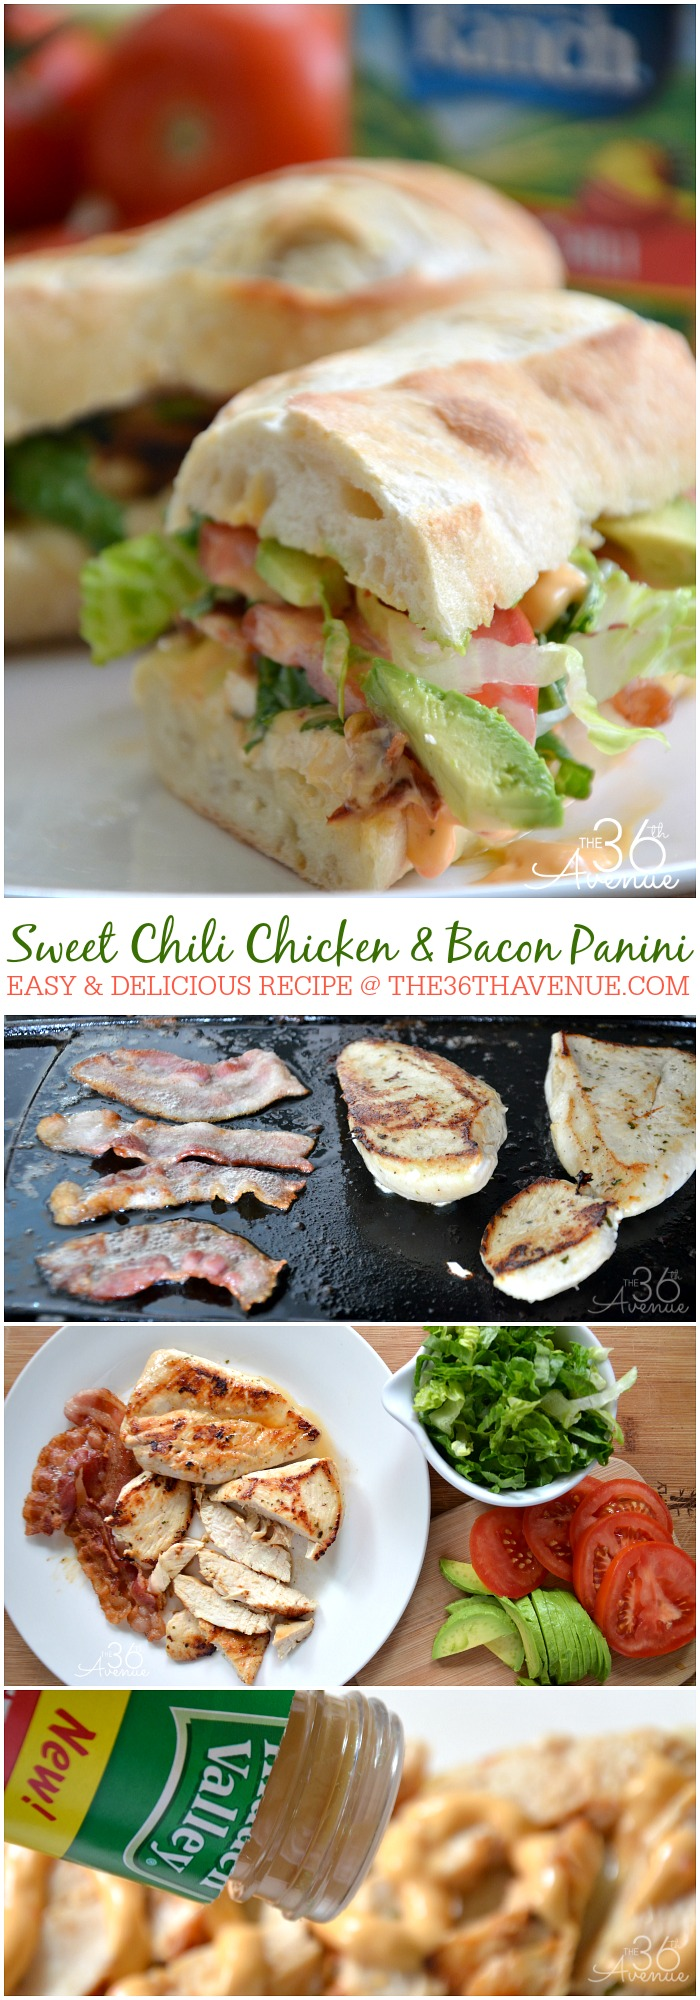 Recipes - Sweet Chili Chicken and Bacon Panini at the36thavenue.com ...Pin it now and make it later!